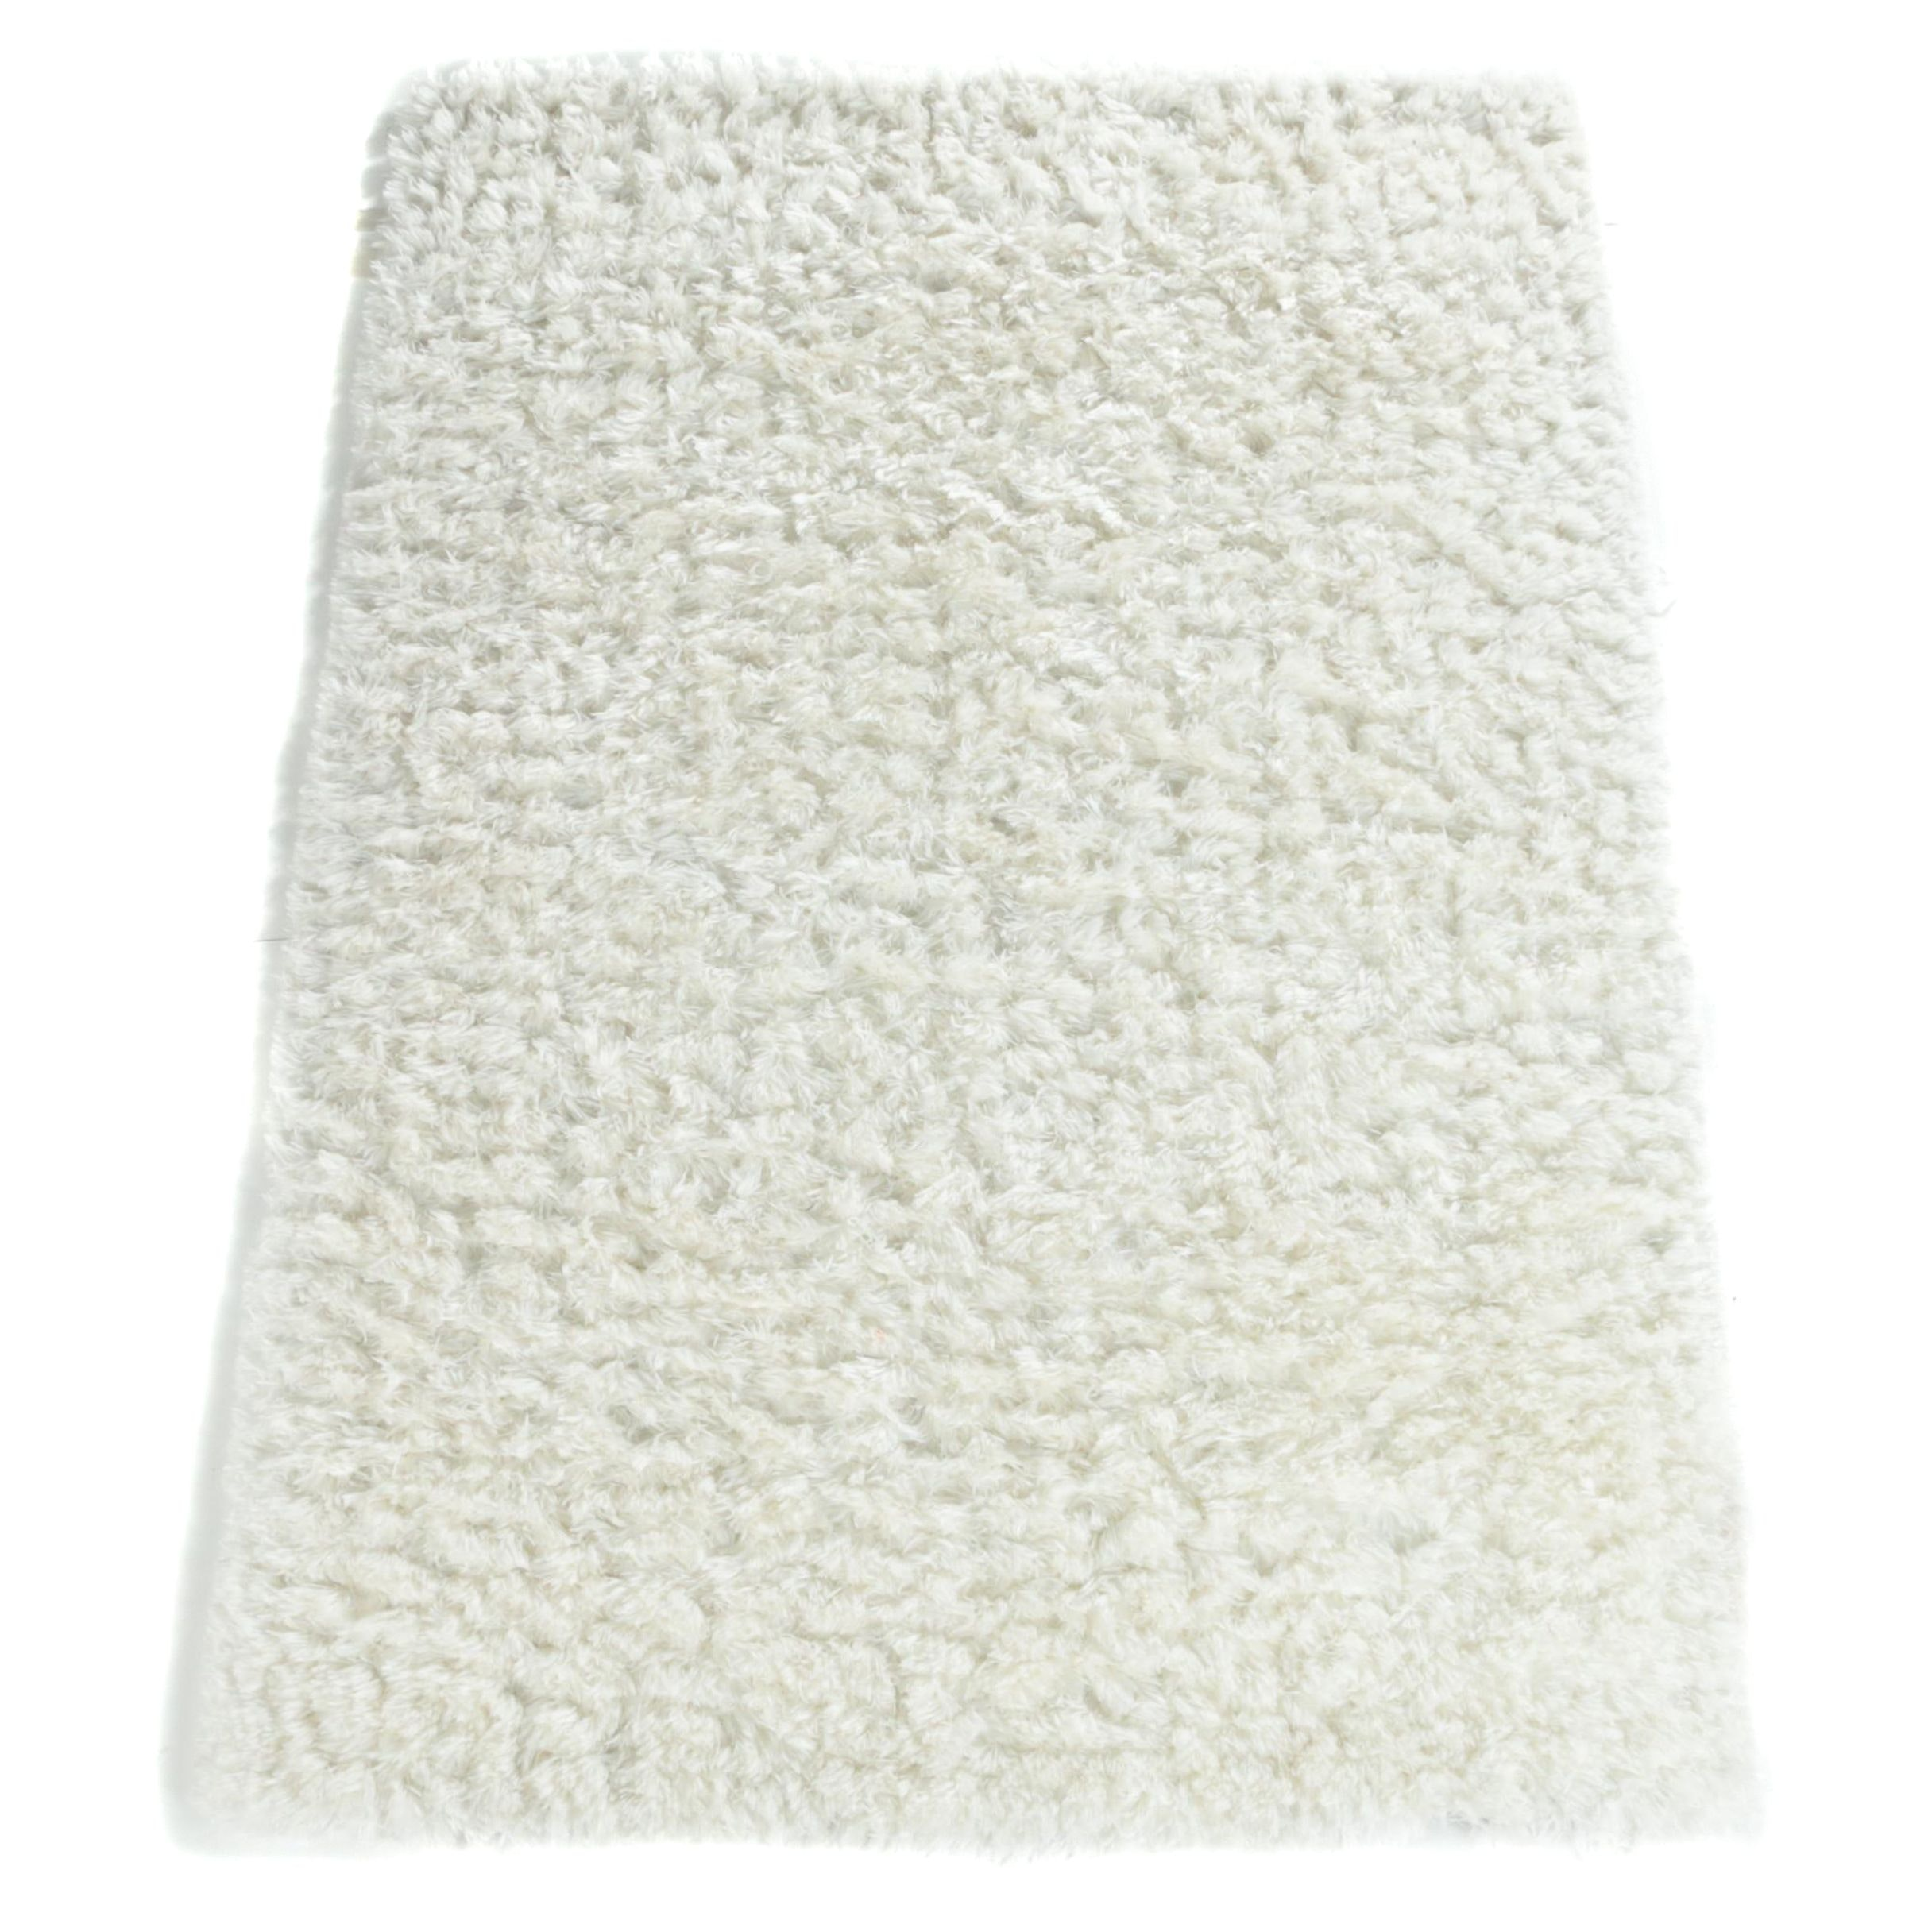 Hand-Tufted Chinese Synthetic Fluffy Pile Area Rug